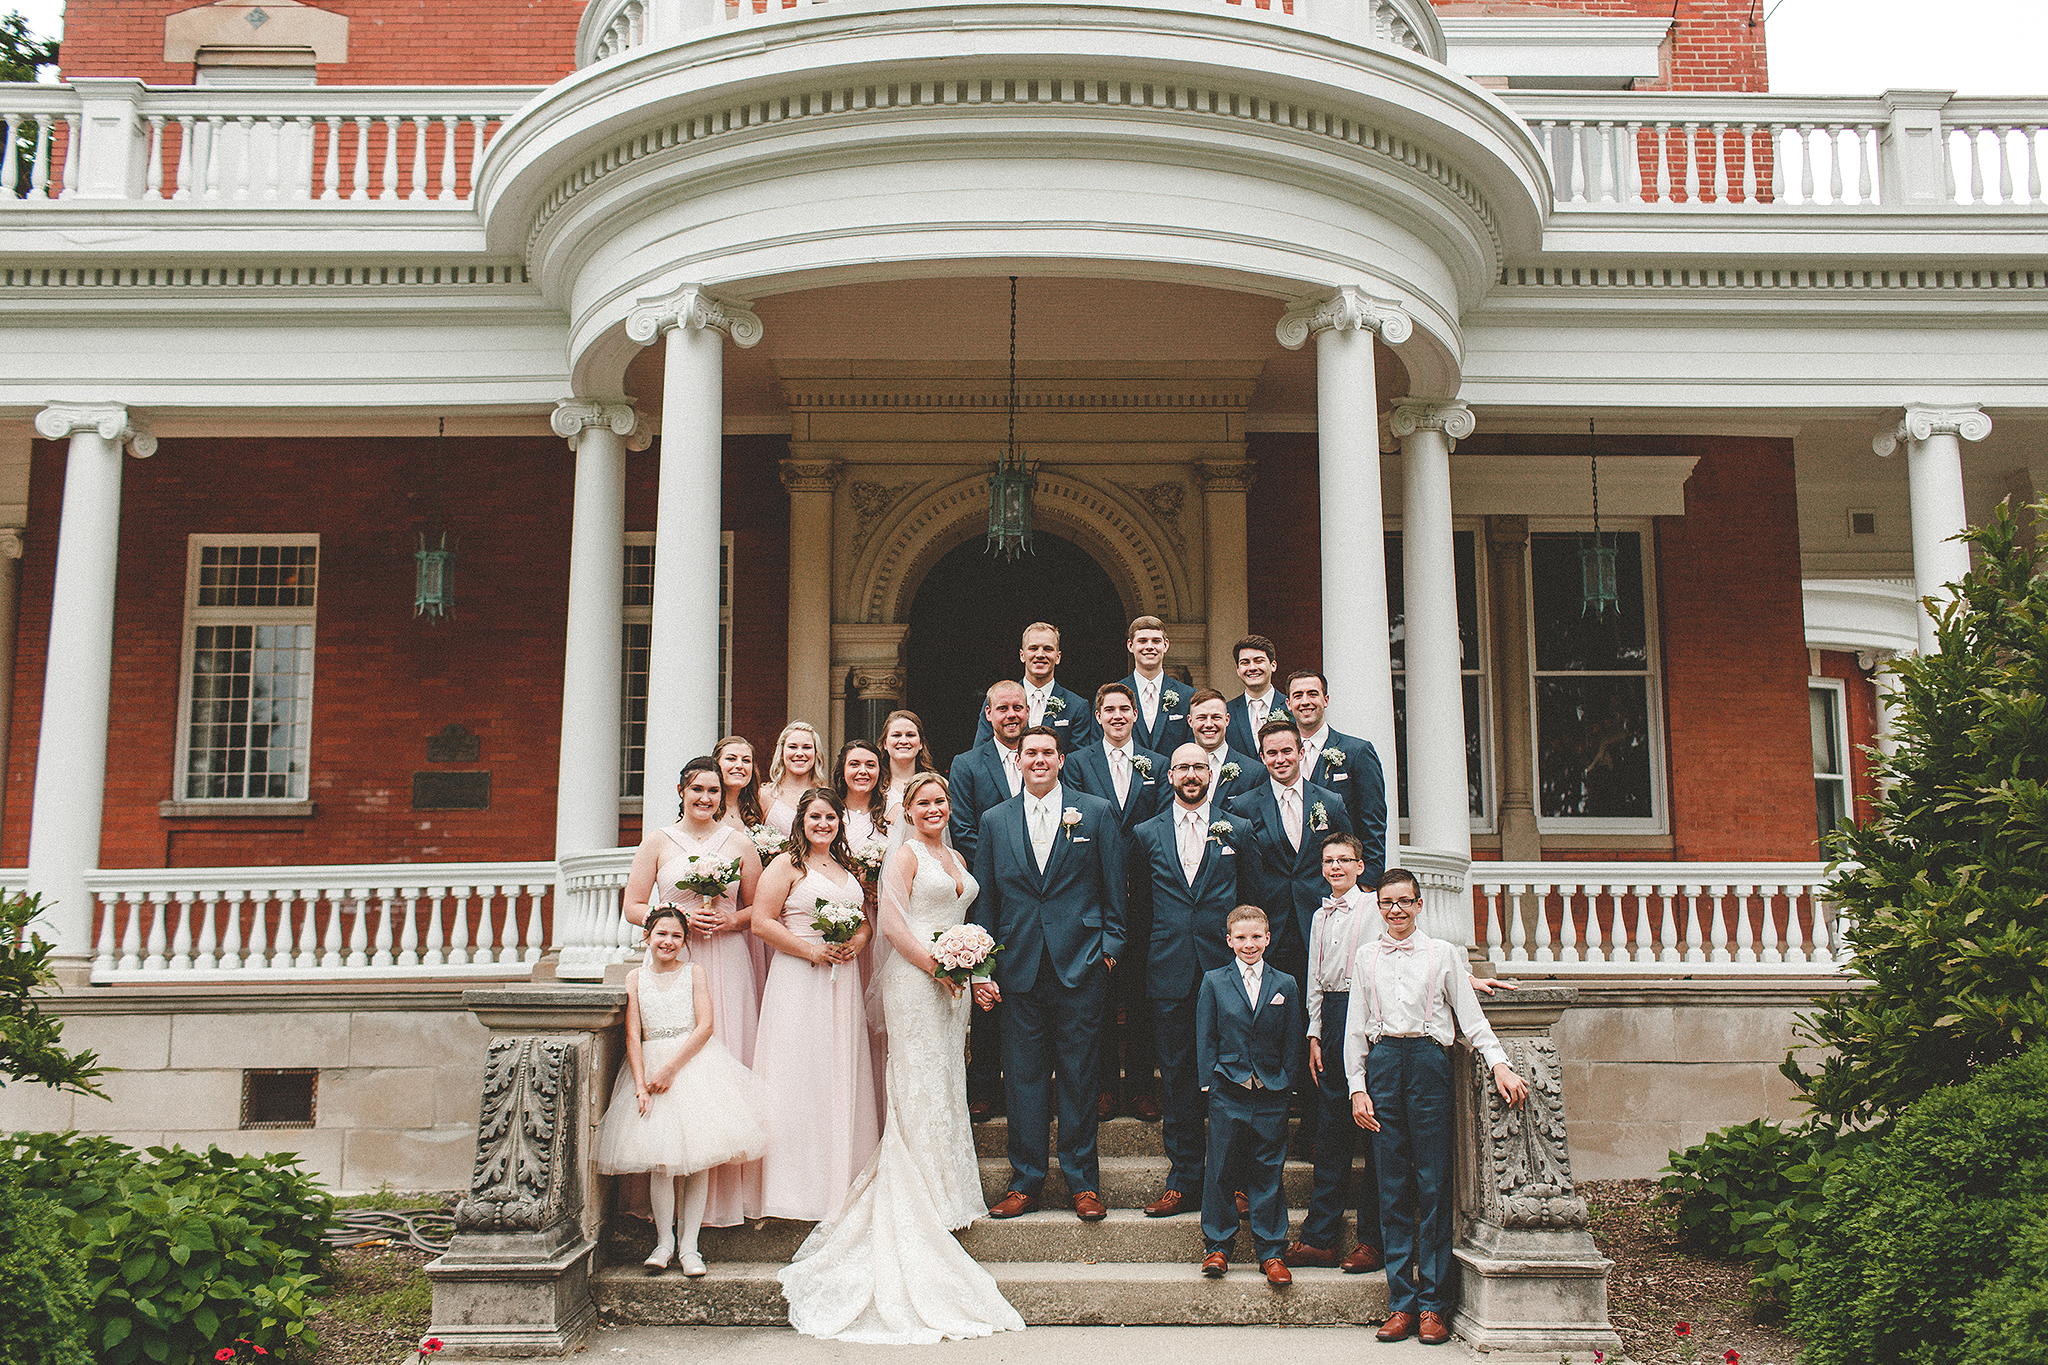 wedding party pictures on steps at ellwood house | dekalb, il wedding photographer | chrissy deming